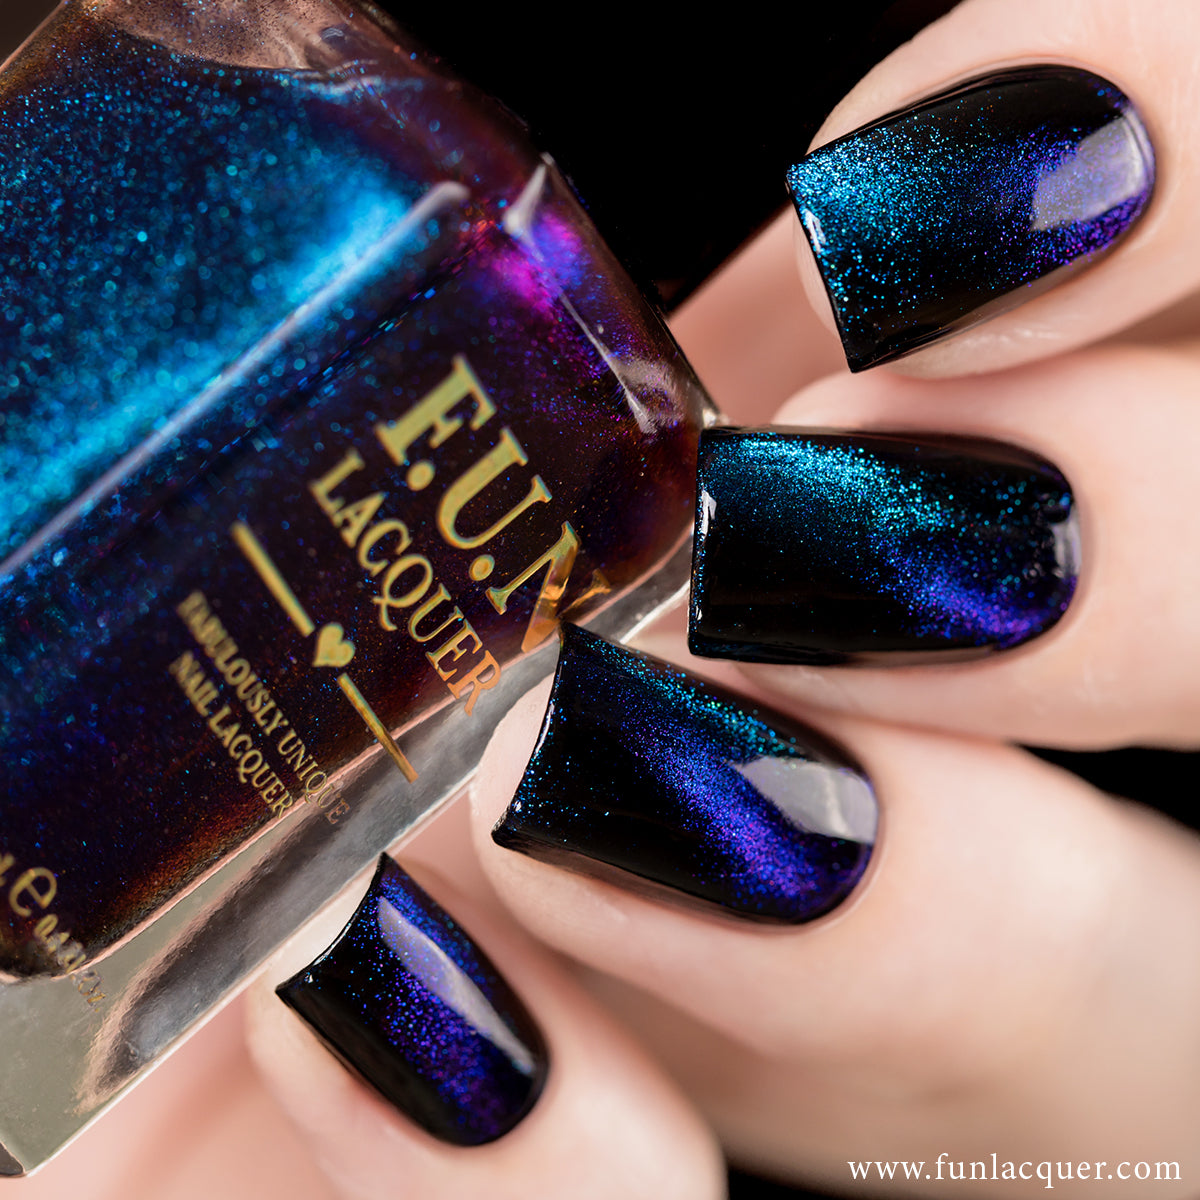 *PRE-SALE* F.U.N Lacquer - Fascinating